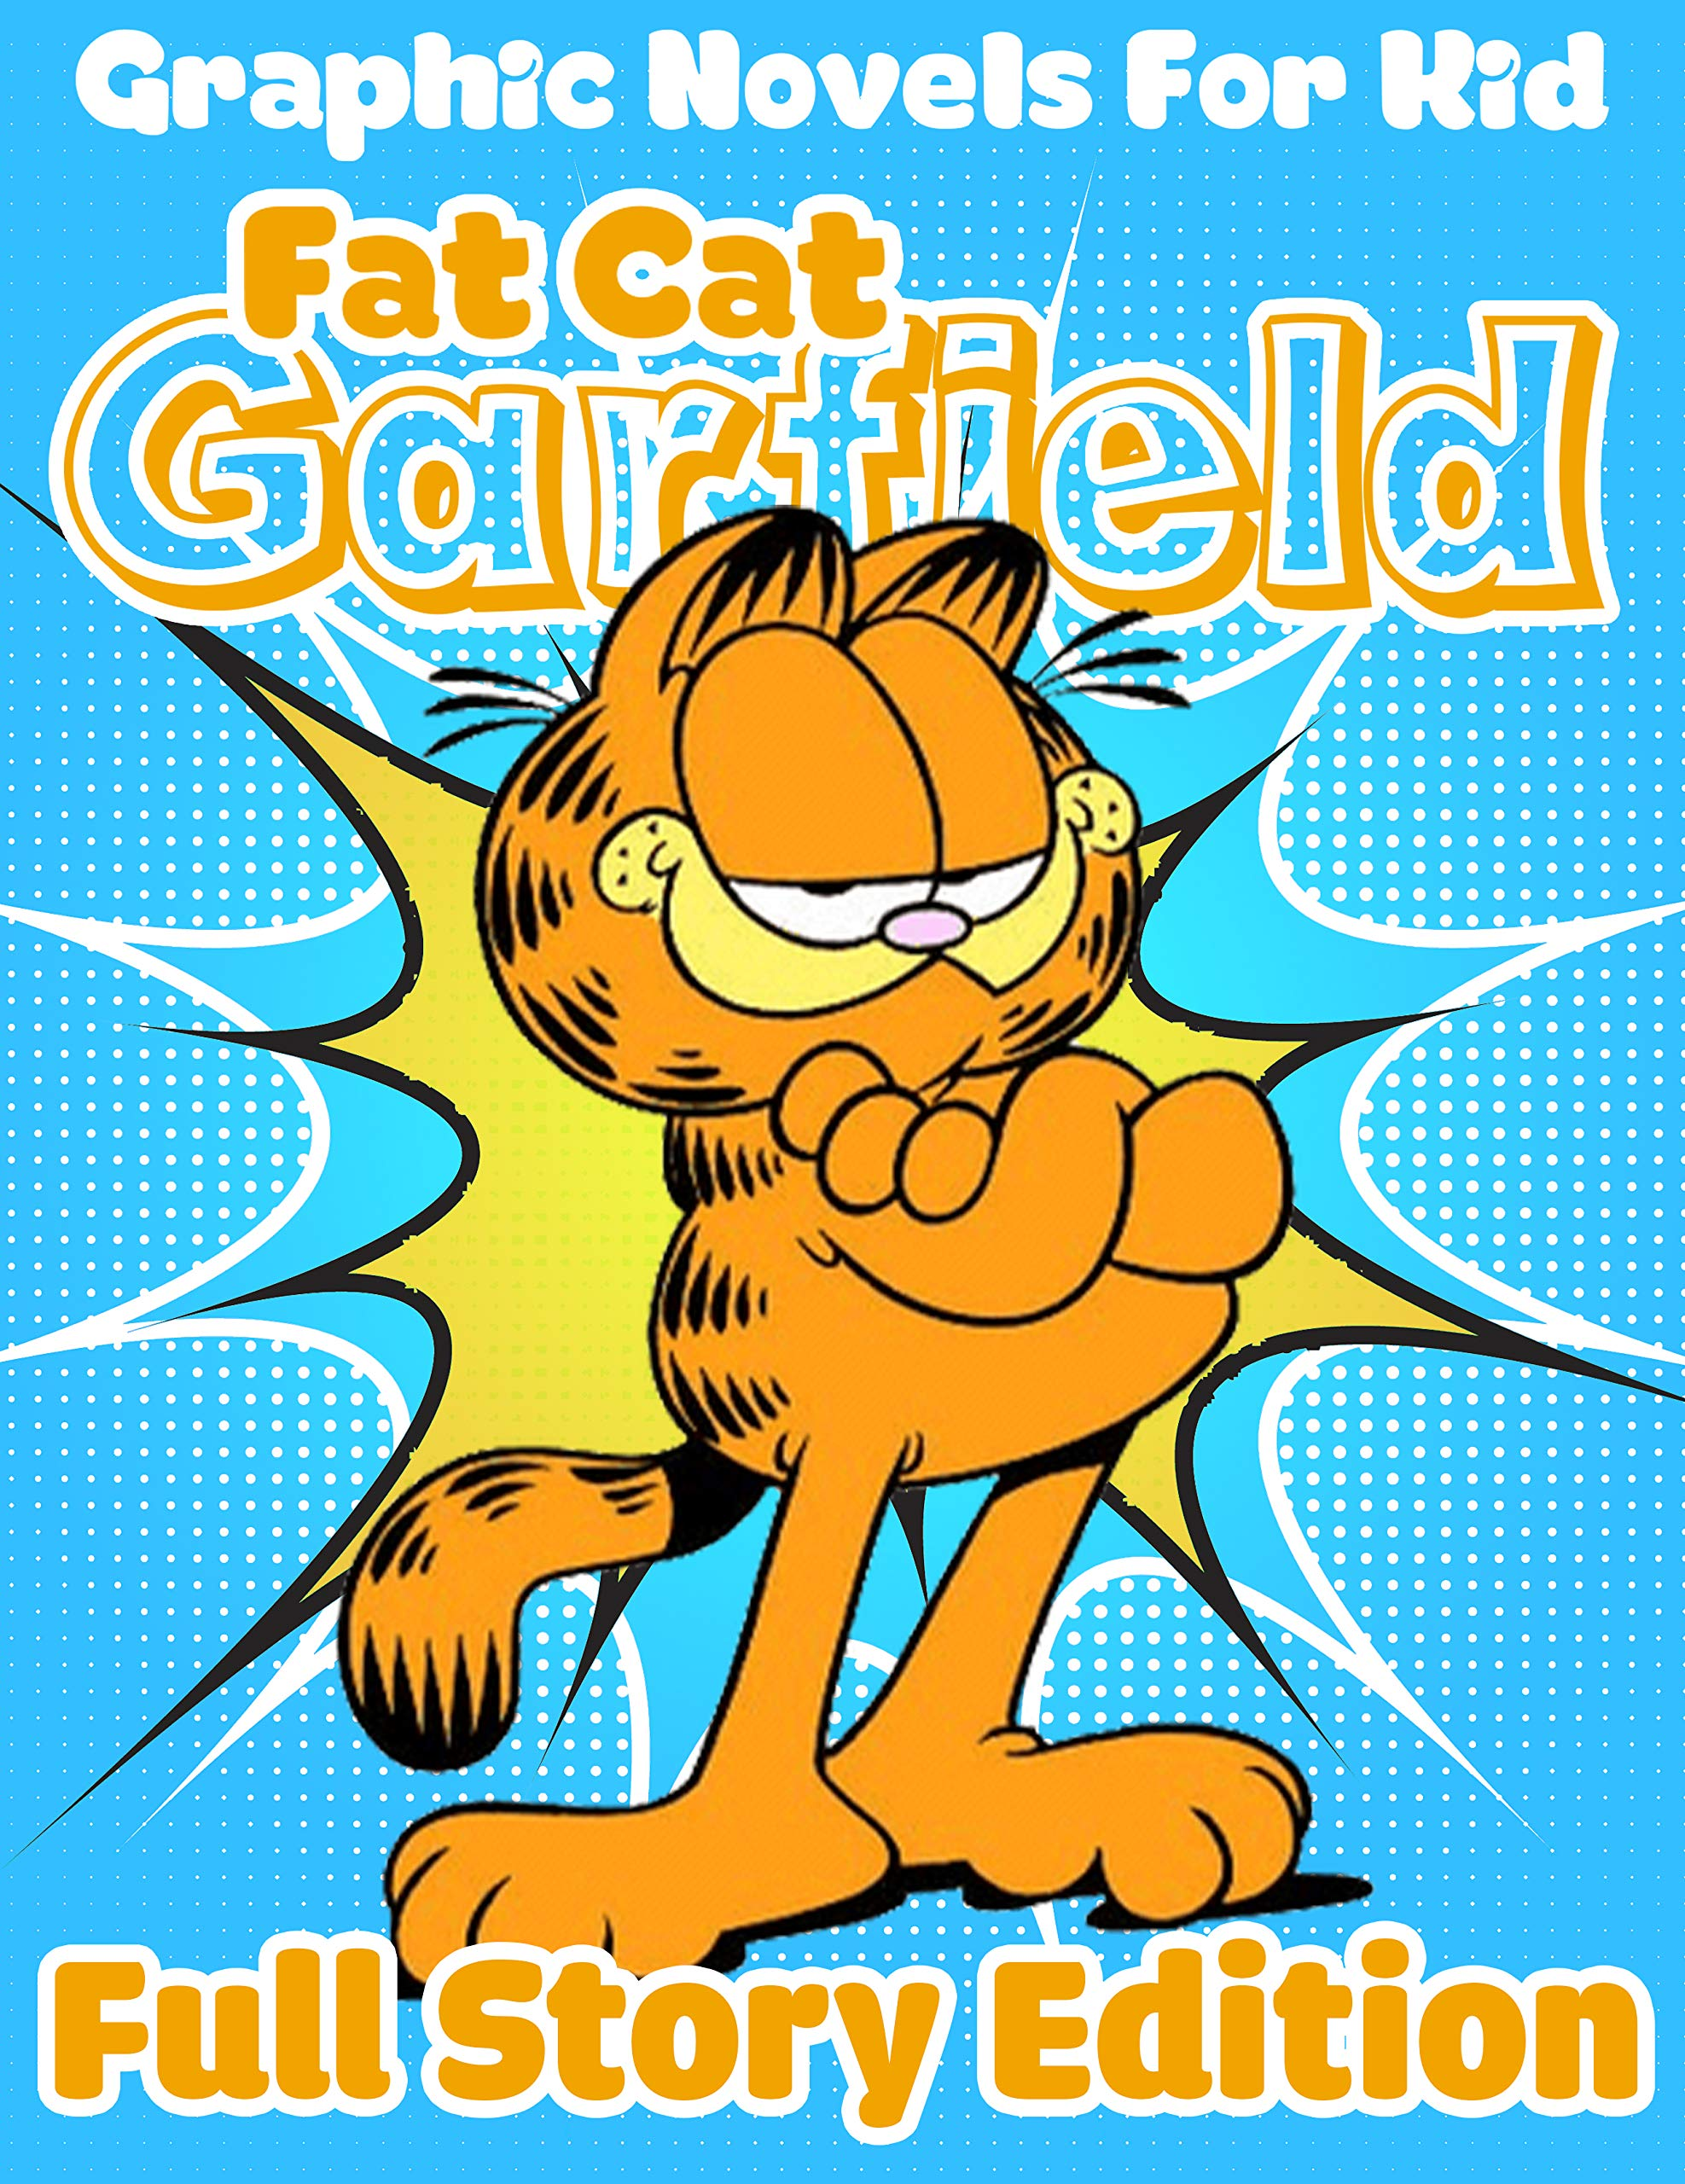 Best Graphic Novel For Kid Full Series Garfield Full Story: Fat Cat Garfield All in One Version